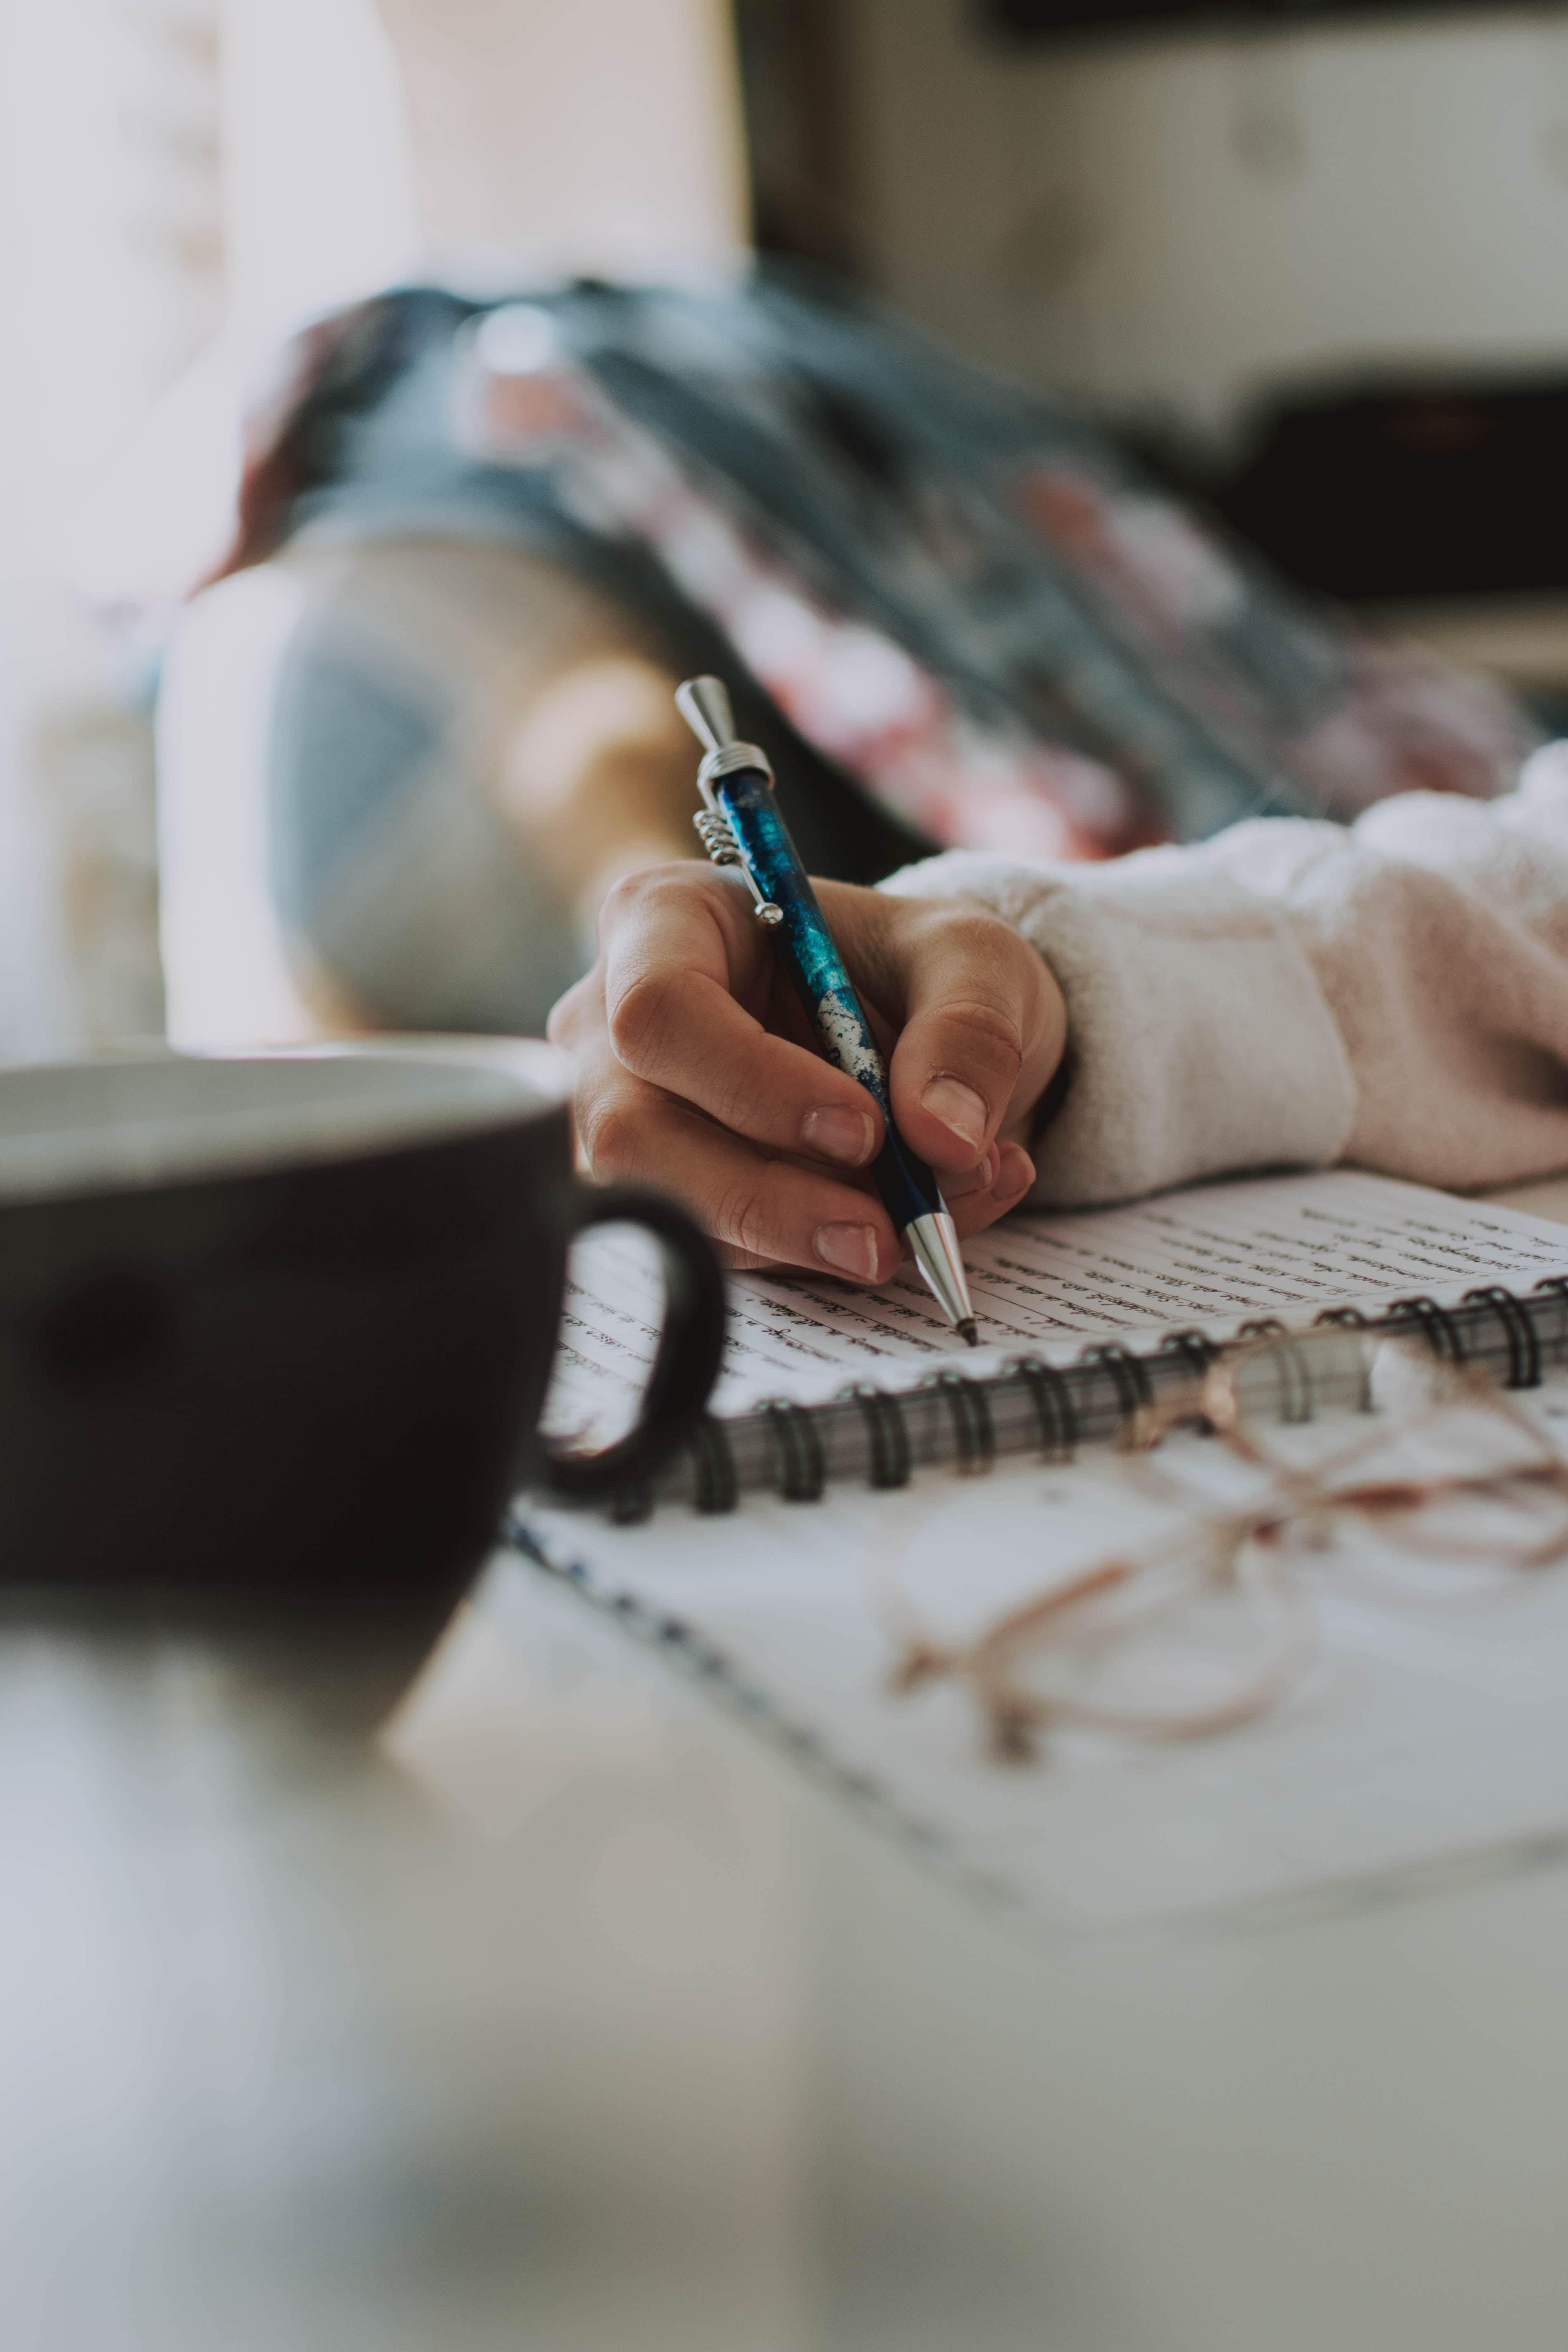 journalling to listen to ourselves